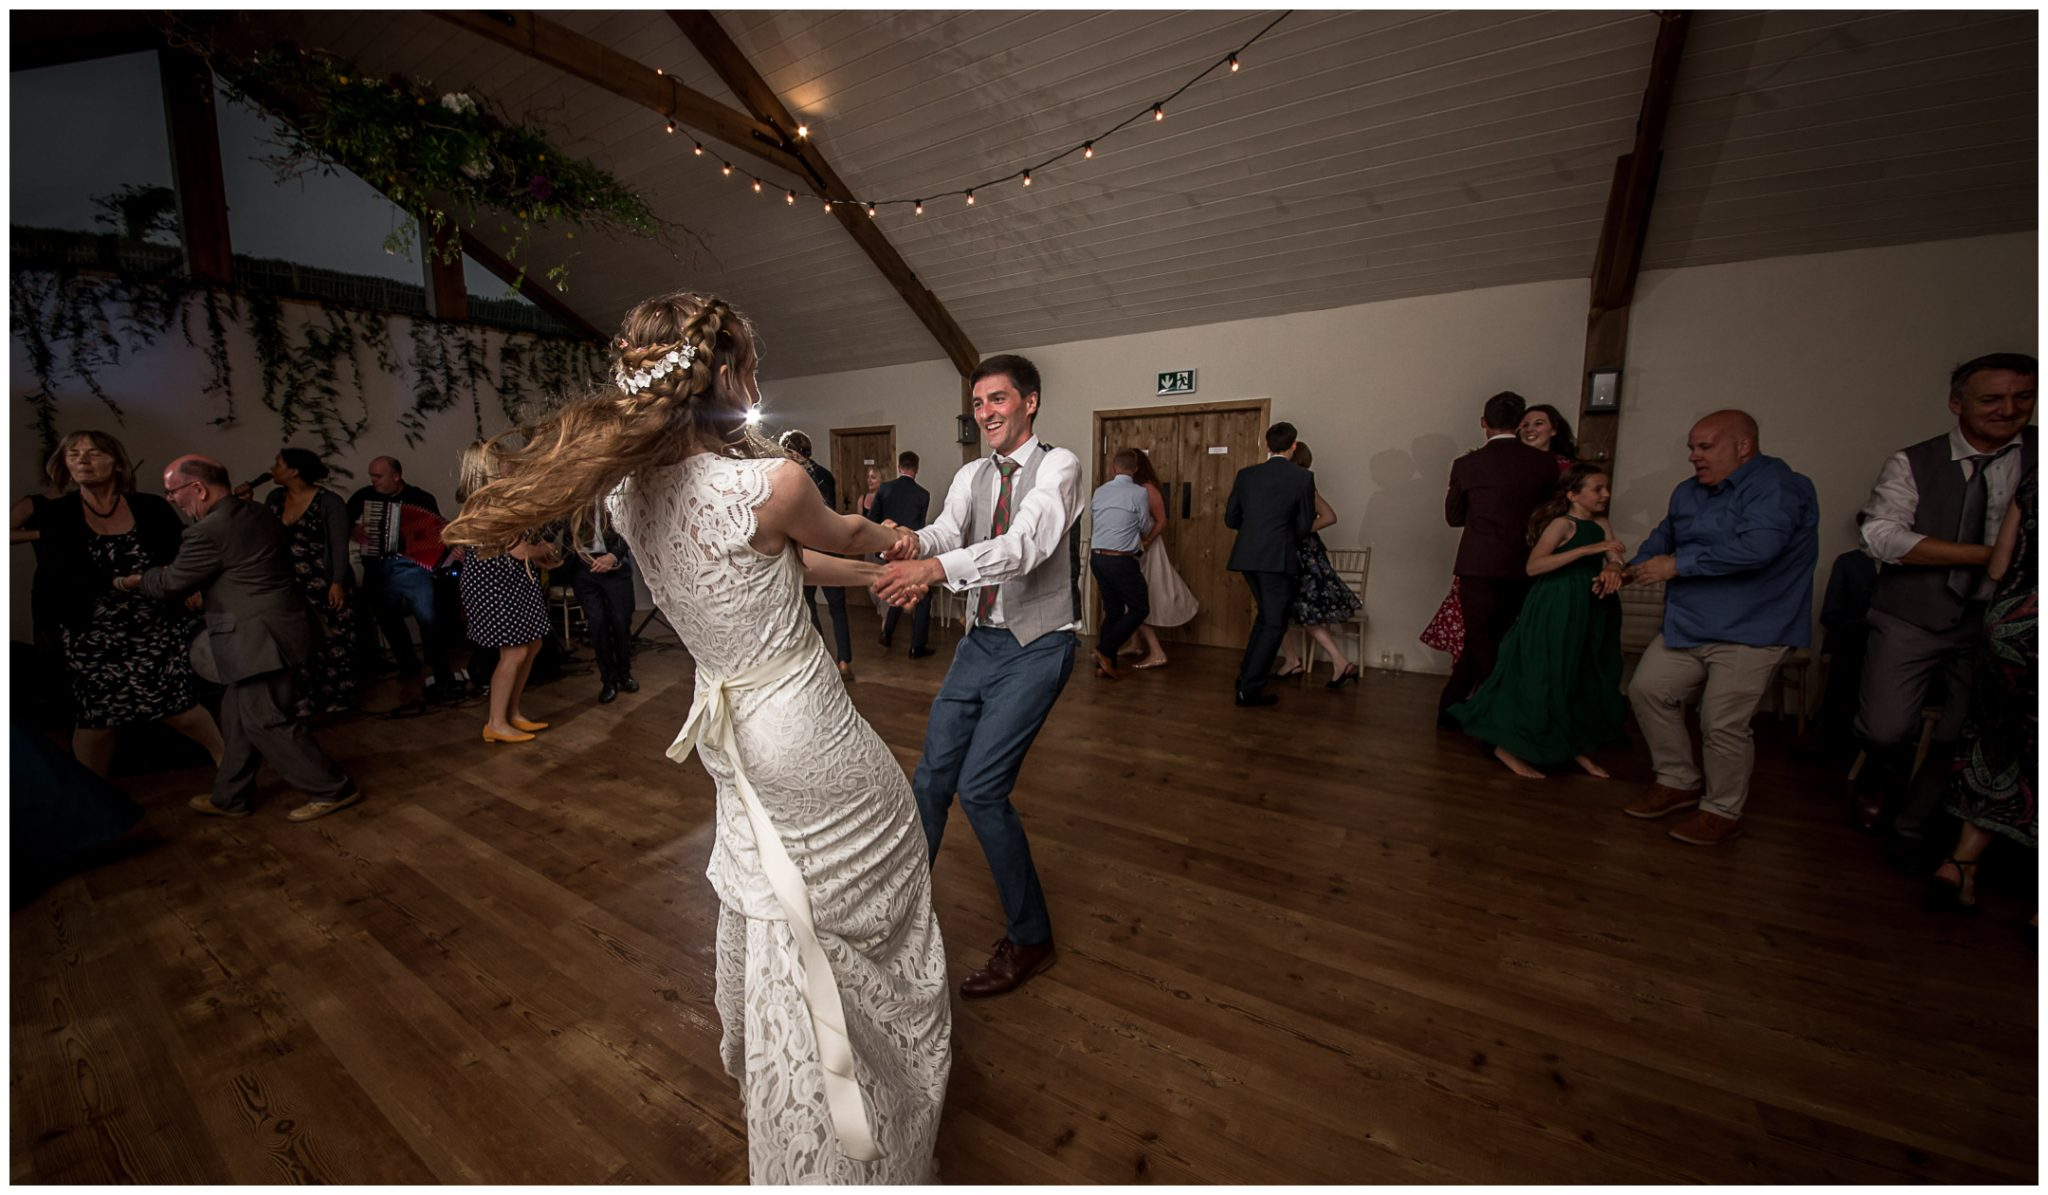 The groom swings the bride around during their dance